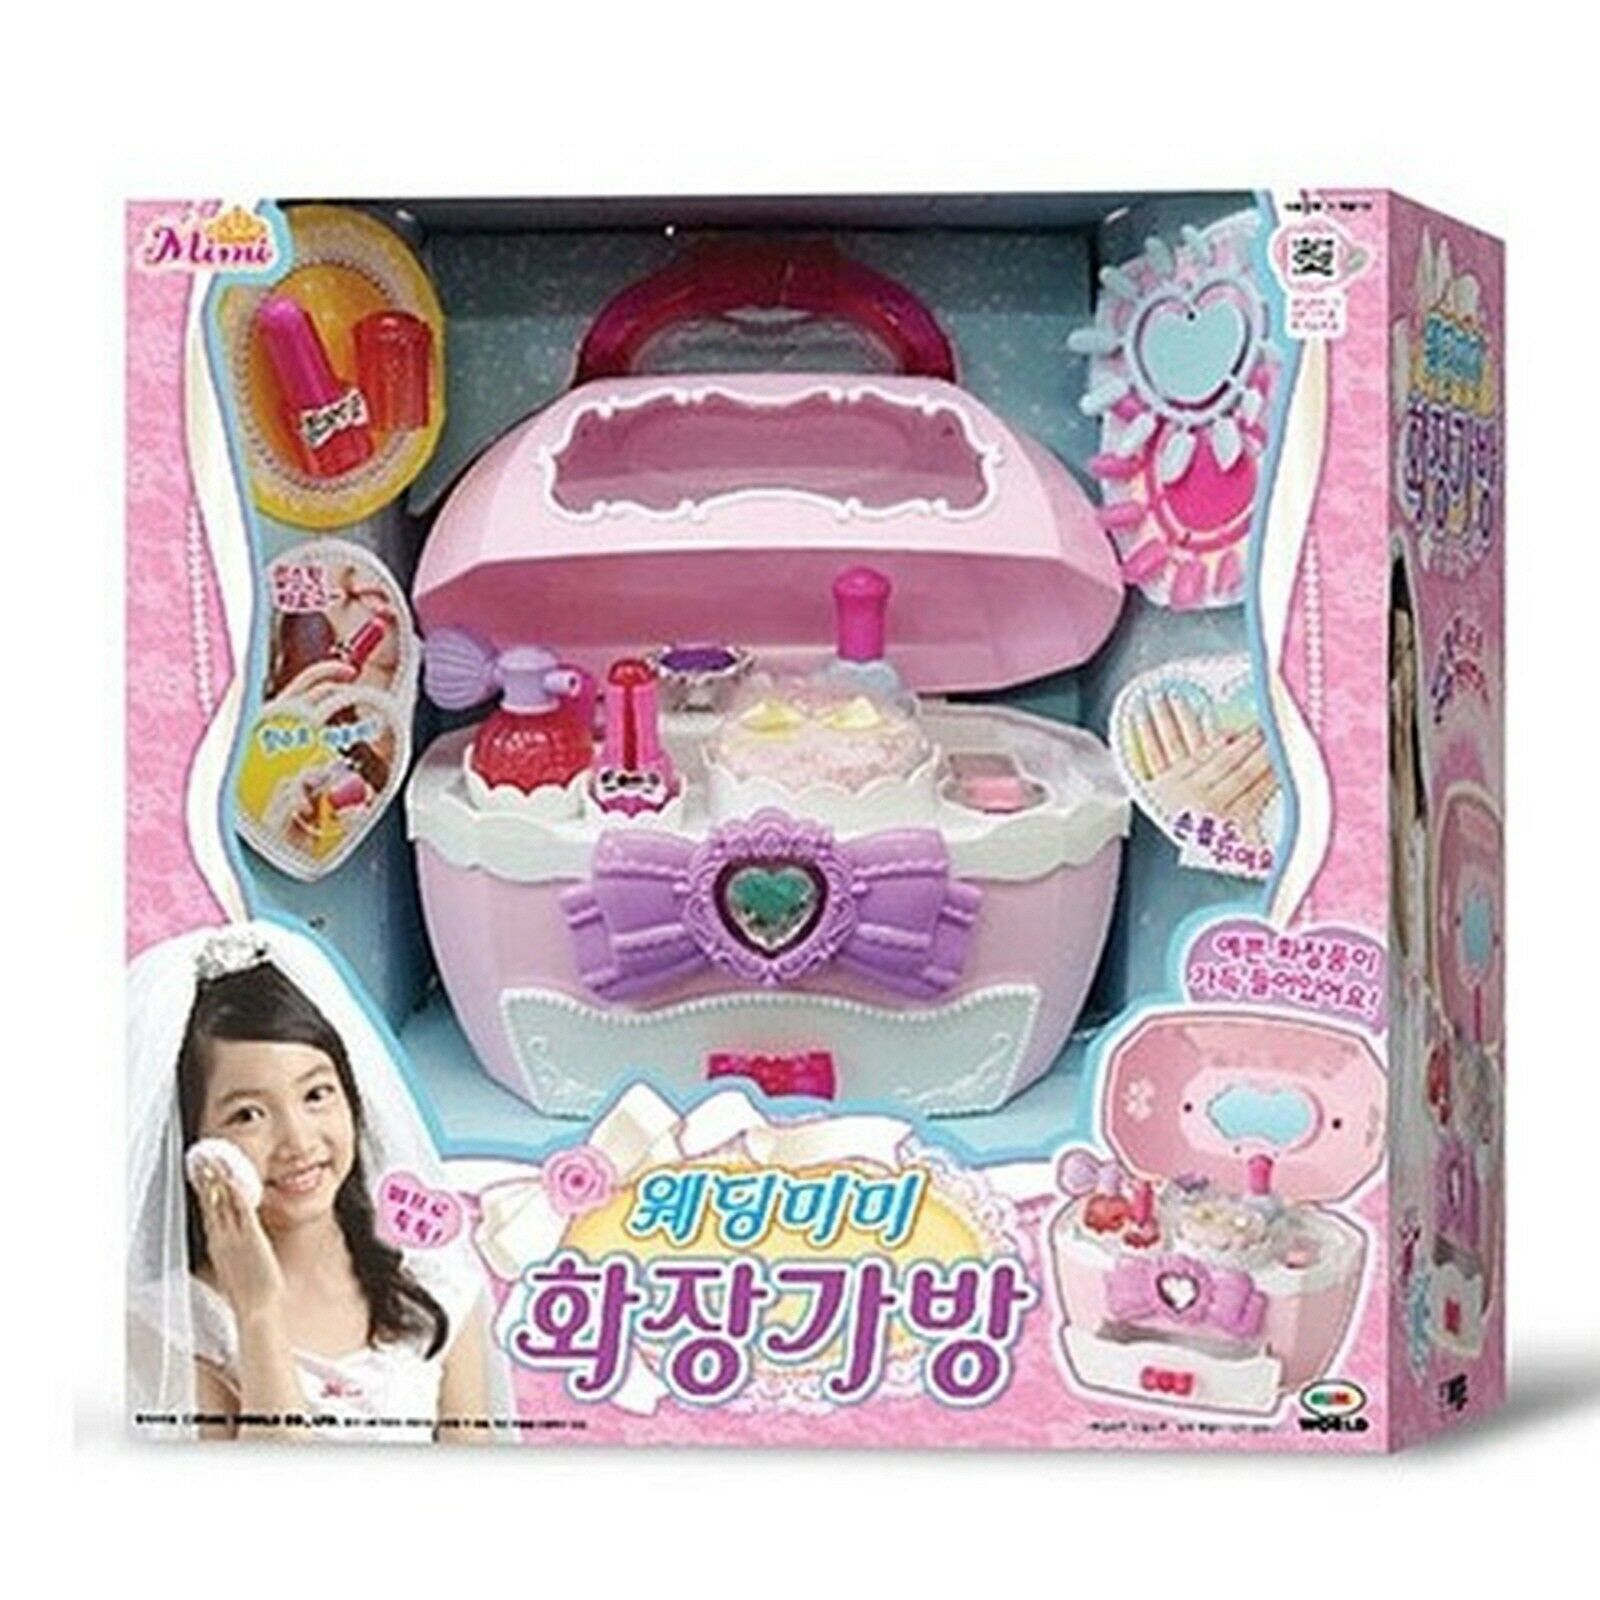 bröllop Mimi Make up låda Korean Barbie Doll Role spela  Dressing bag leksak Girl